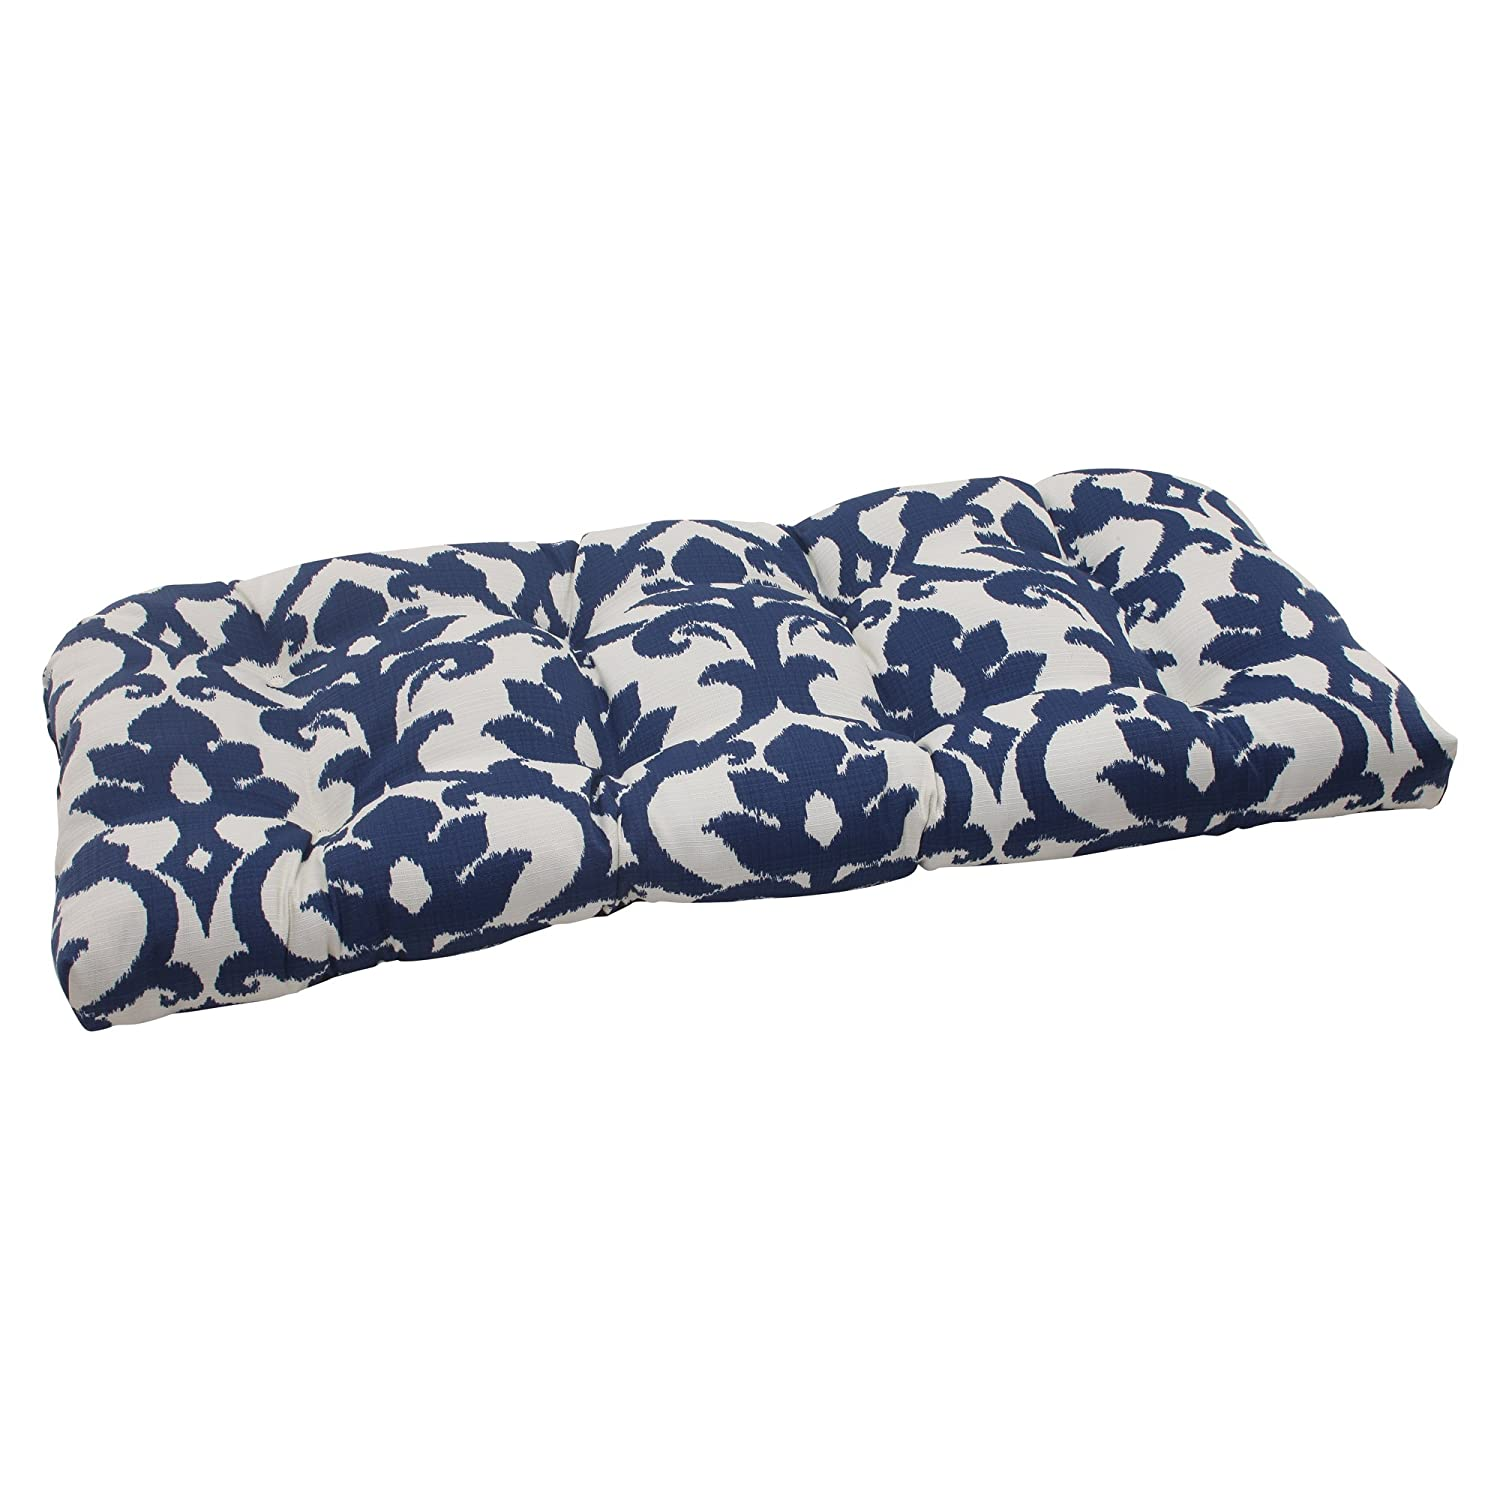 Pillow Perfect Outdoor Bosco Wicker Loveseat Cushion, Navy